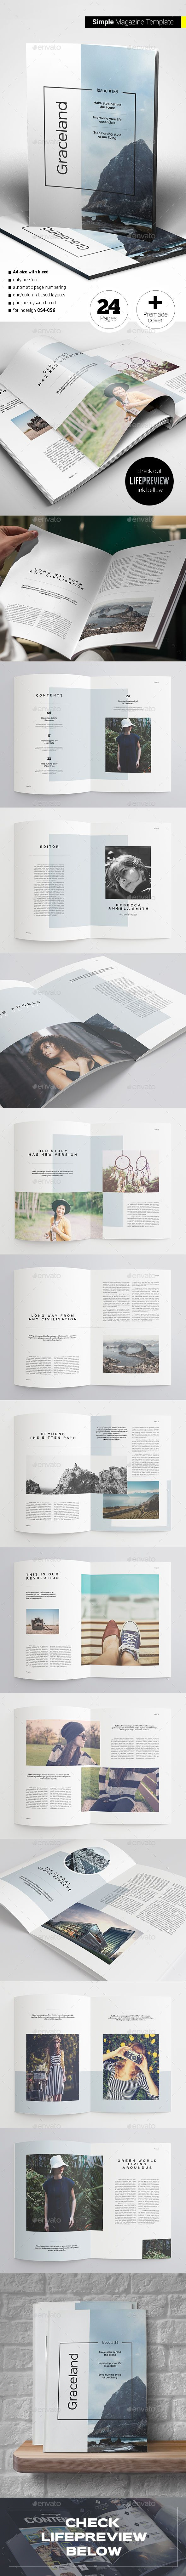 Simple Magazine — InDesign INDD #portfolio #corporate • Available here → https://graphicriver.net/item/simple-magazine/17182438?ref=pxcr